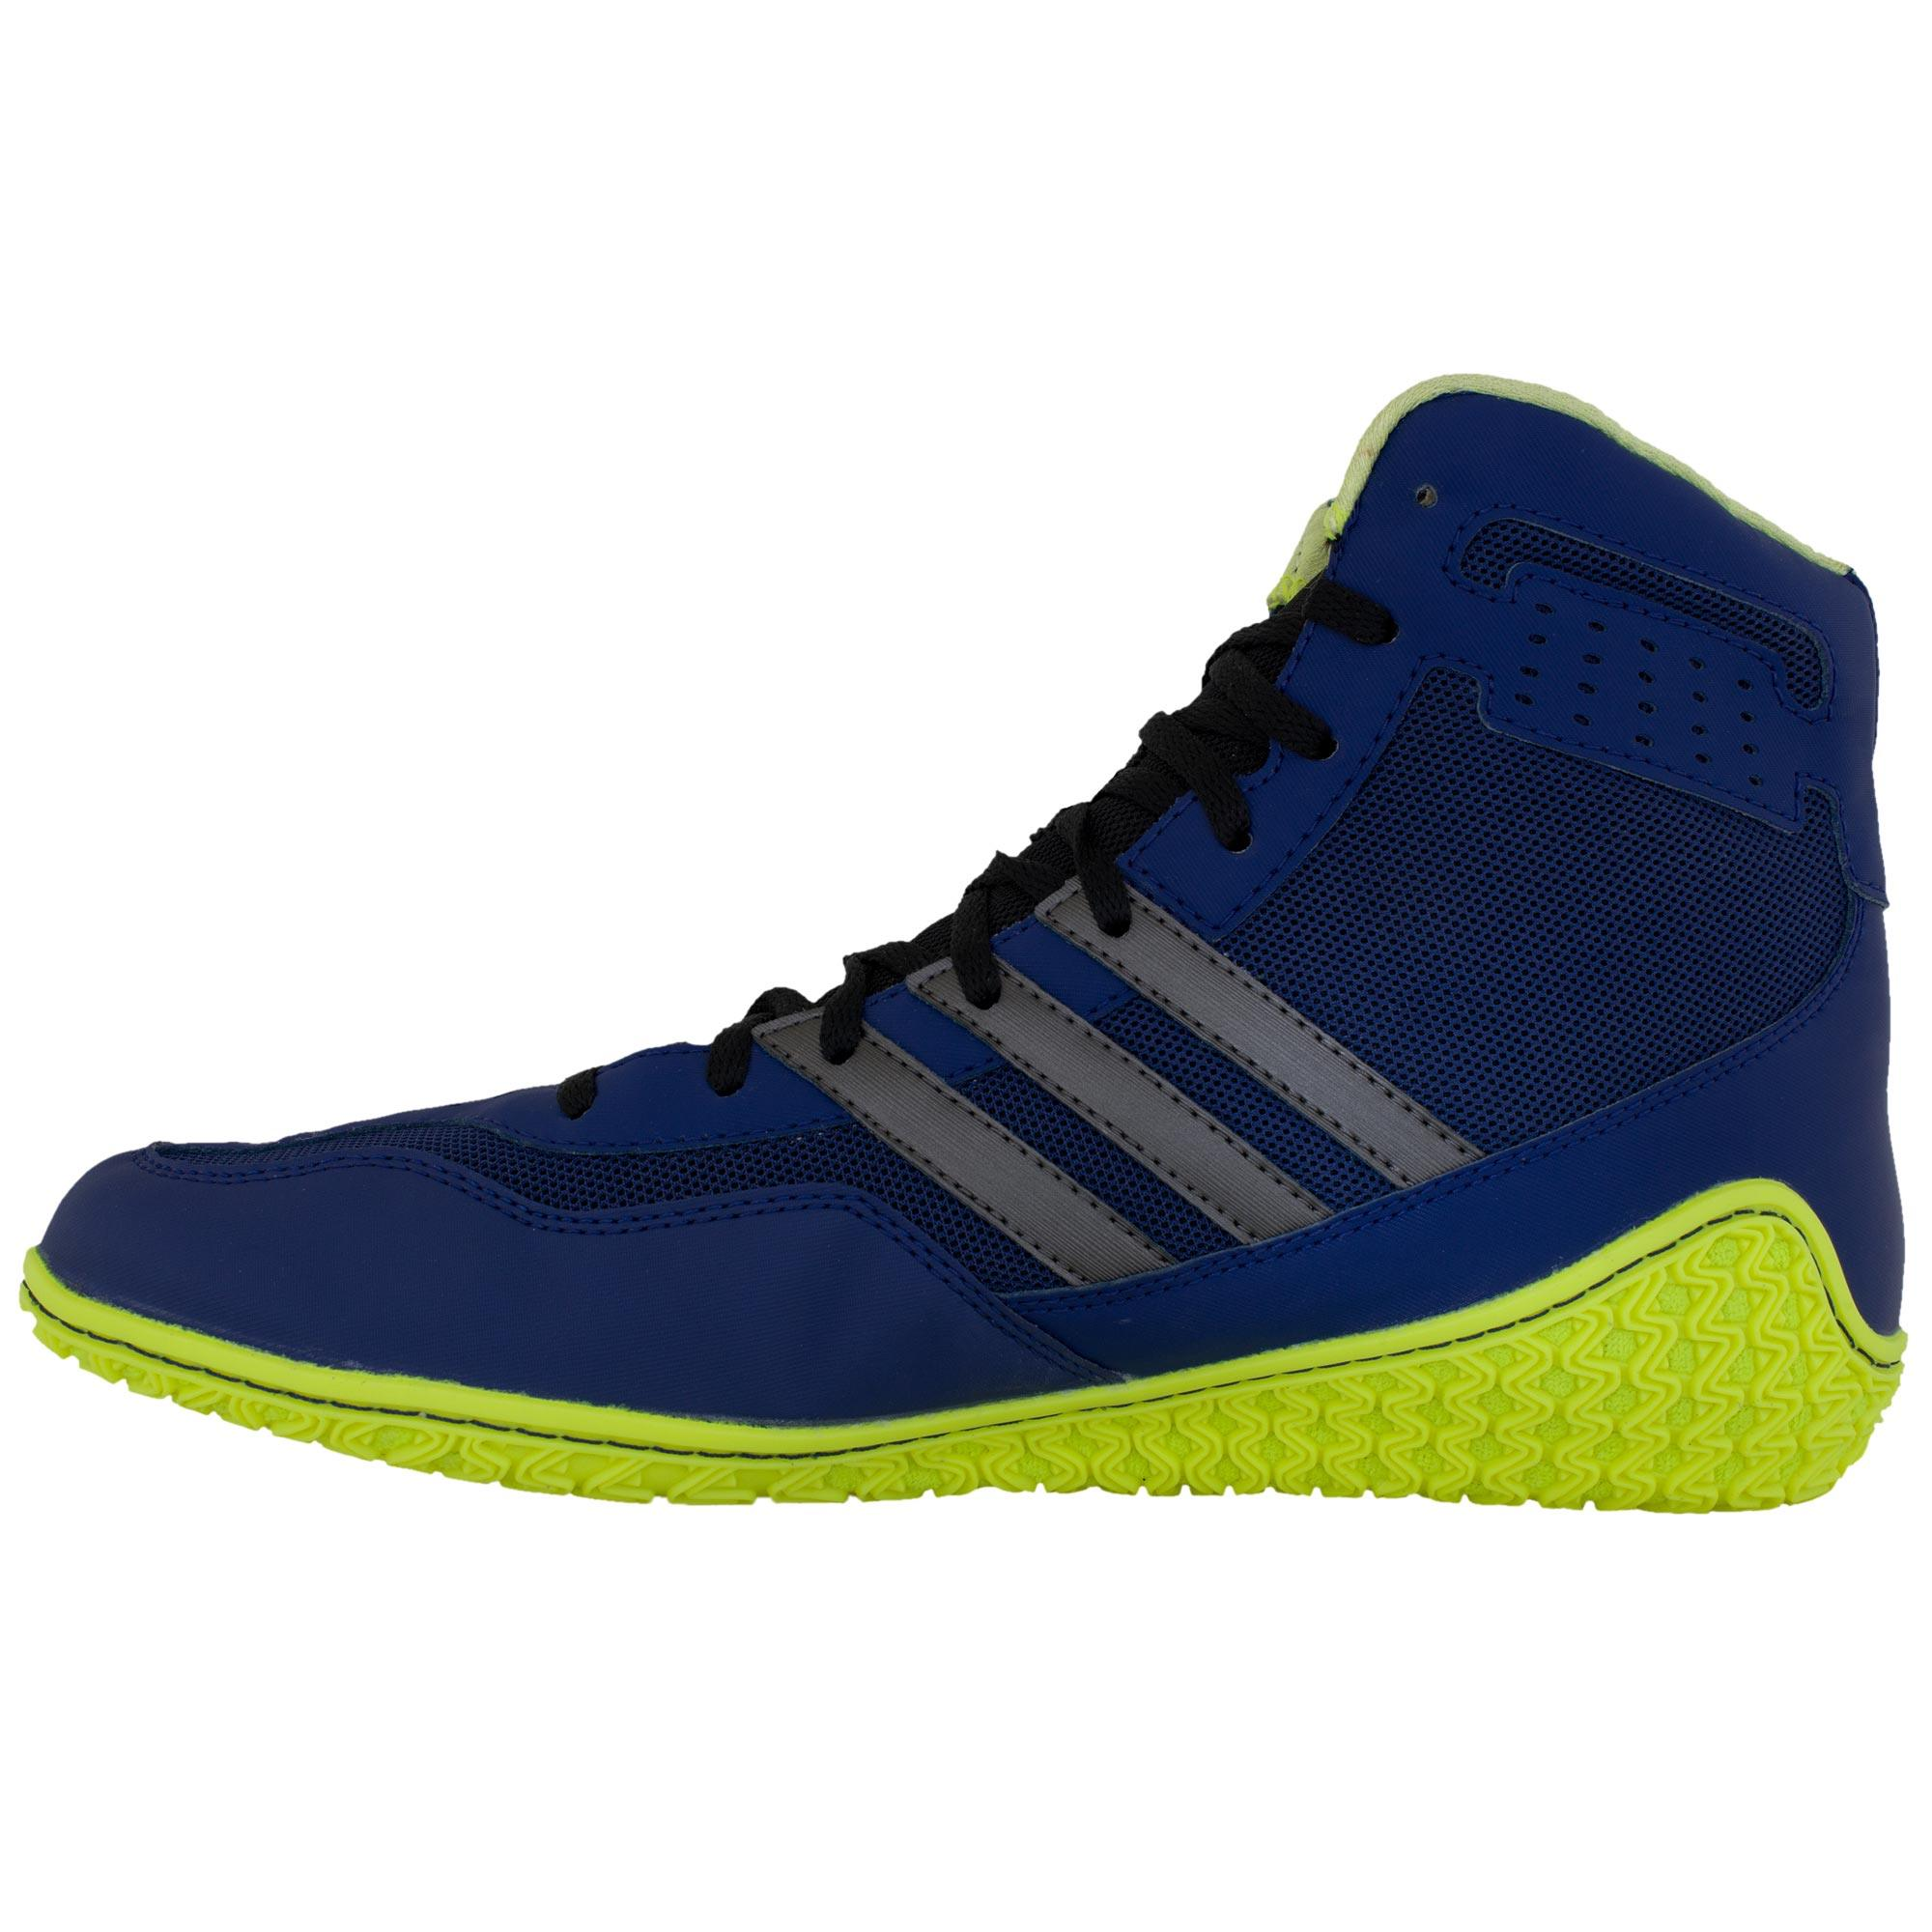 ... Mat Wizards Navy Lime Green frontAdidas Mat Wizards Navy Lime Green back Adidas Mat Wizards Navy Lime Green sole